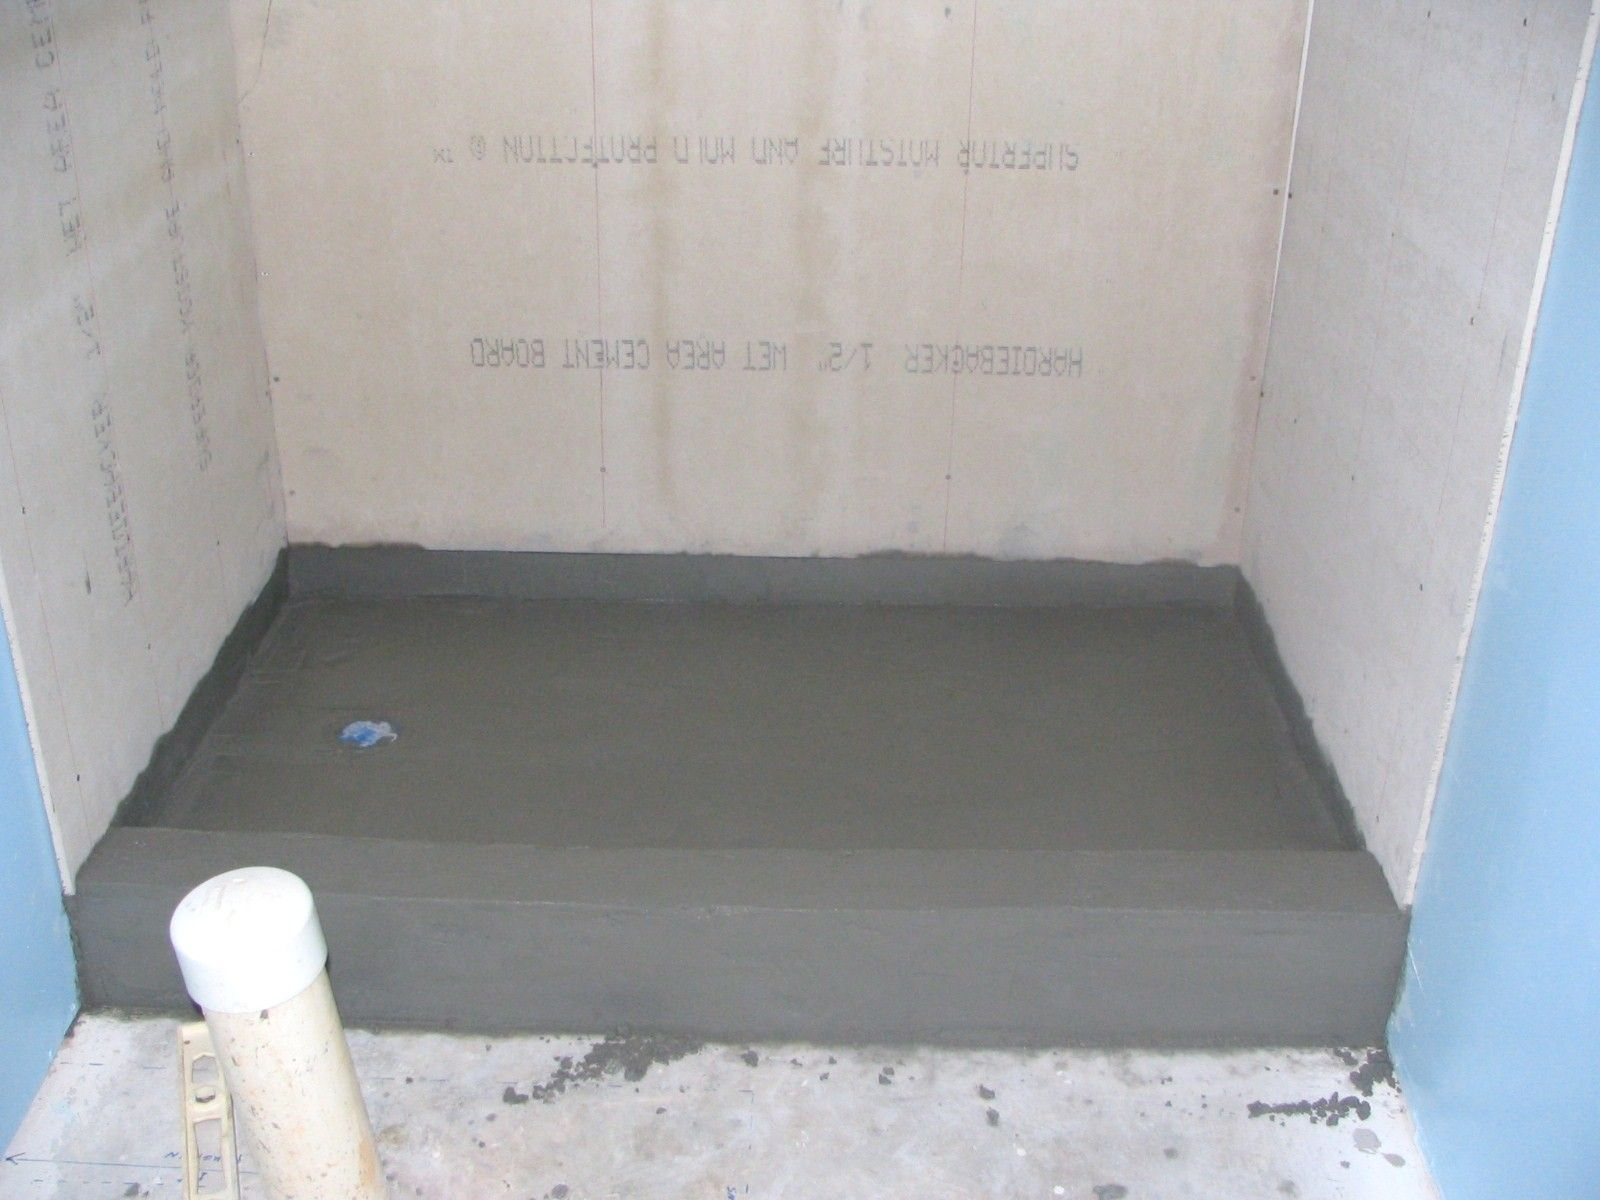 Basement Bathroom: Shower Pan Mortar Bed and Cement Backer Board on ...